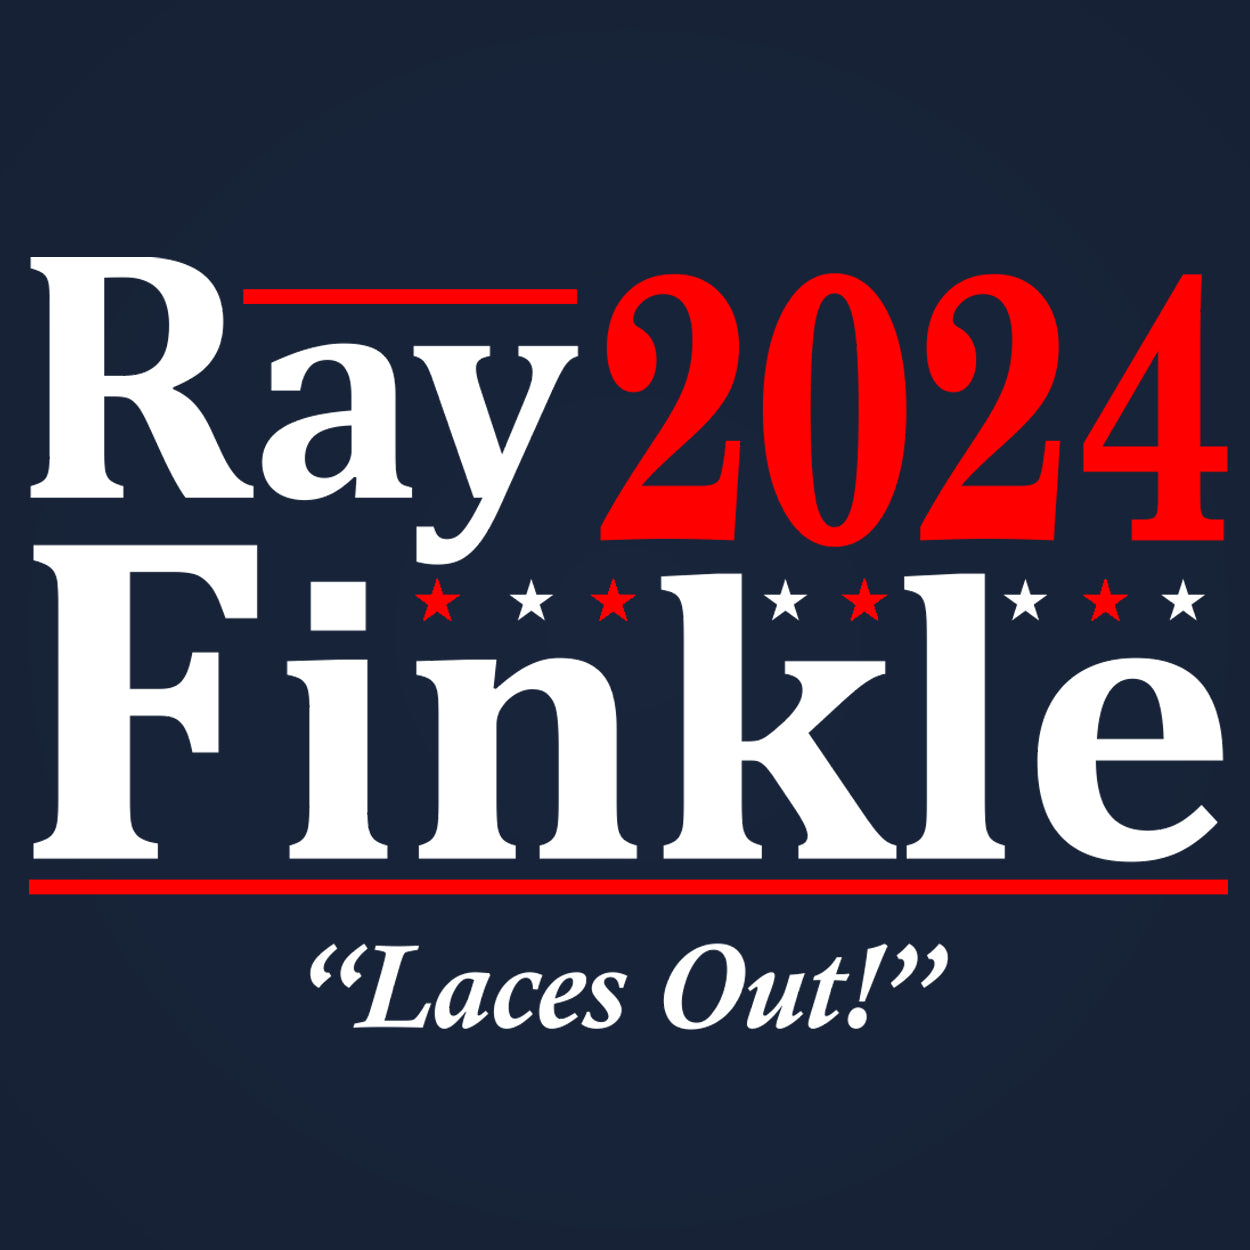 Ray Finkle 2024 Election